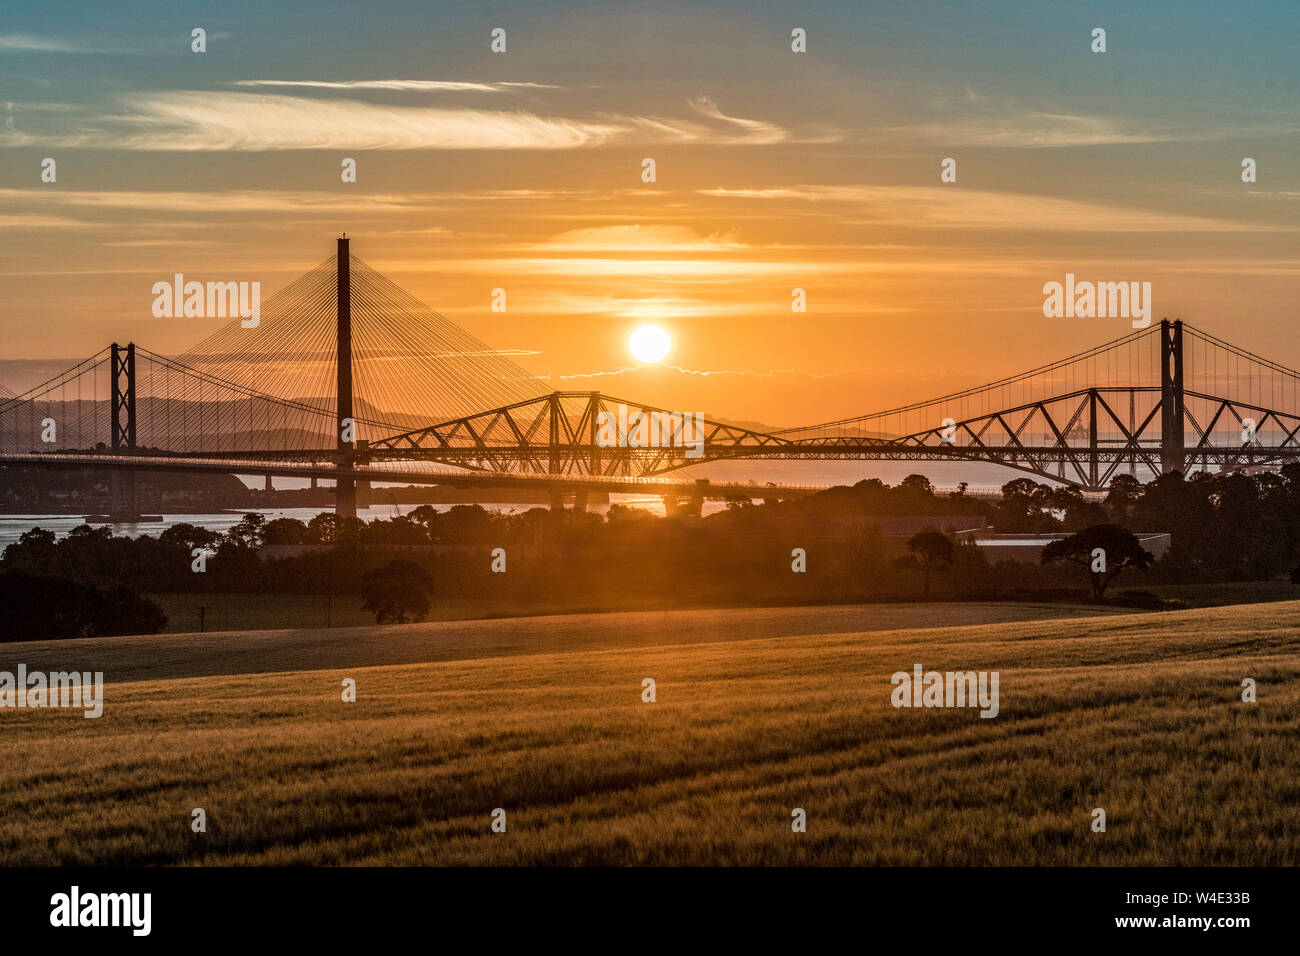 Queensferry Crossing at sunrise with the three Forth Bridges at South Queensferry Stock Photo